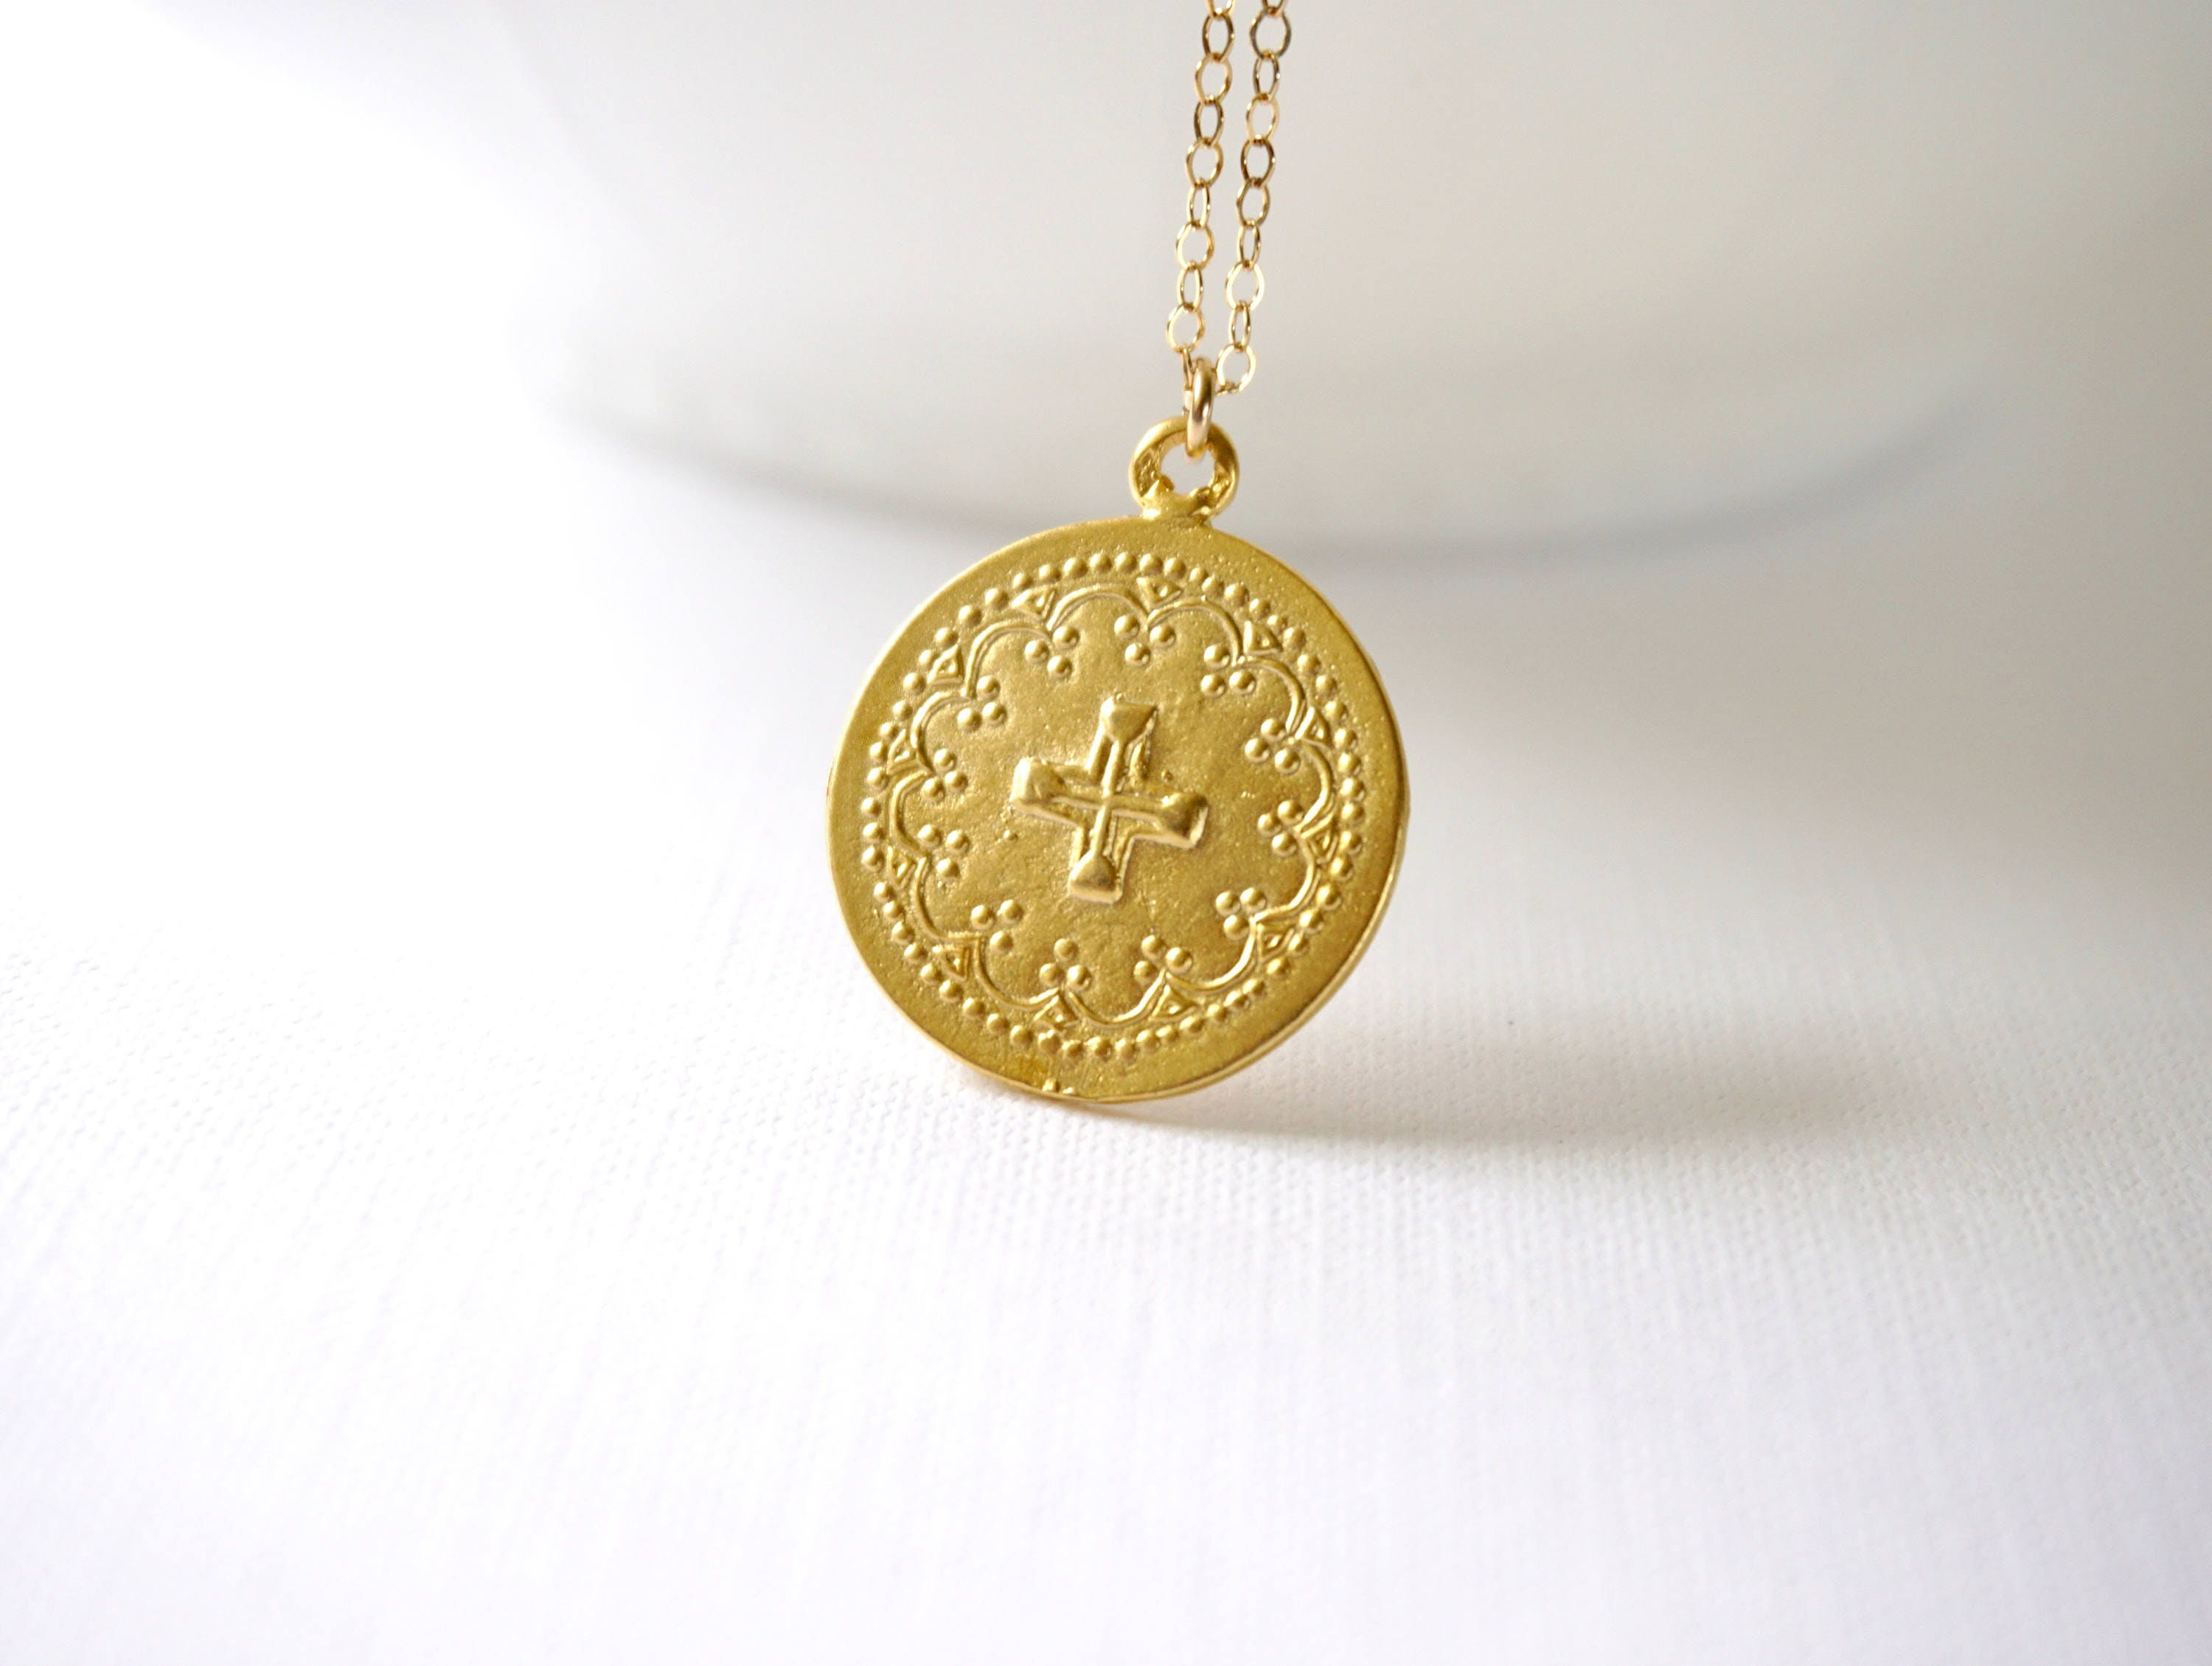 virgin necklace en gold dk zoom religious mary il fullxfull cross chain medallion listing